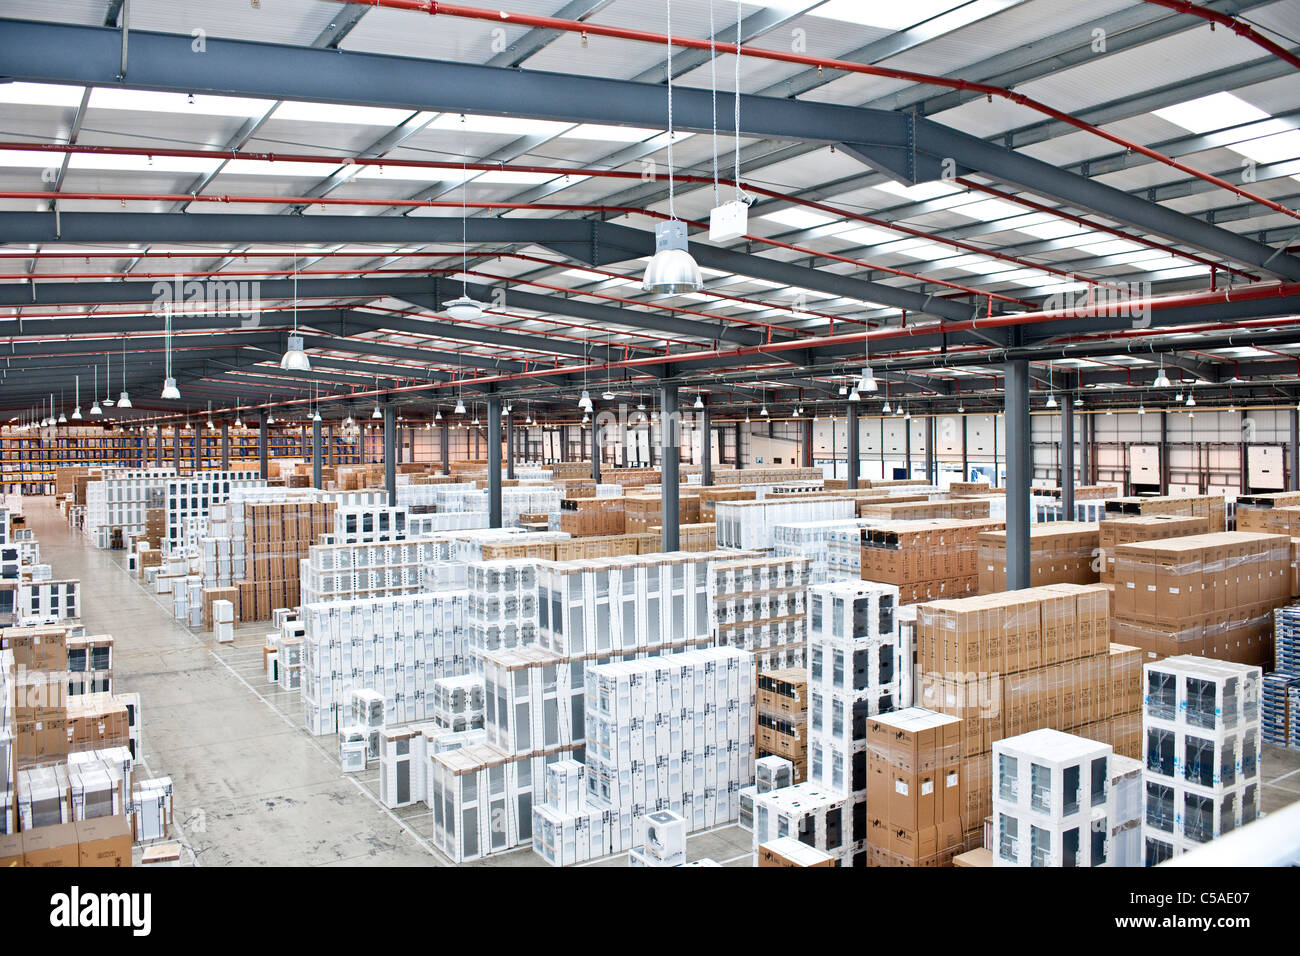 Warehouse storage 4 - Stock Image